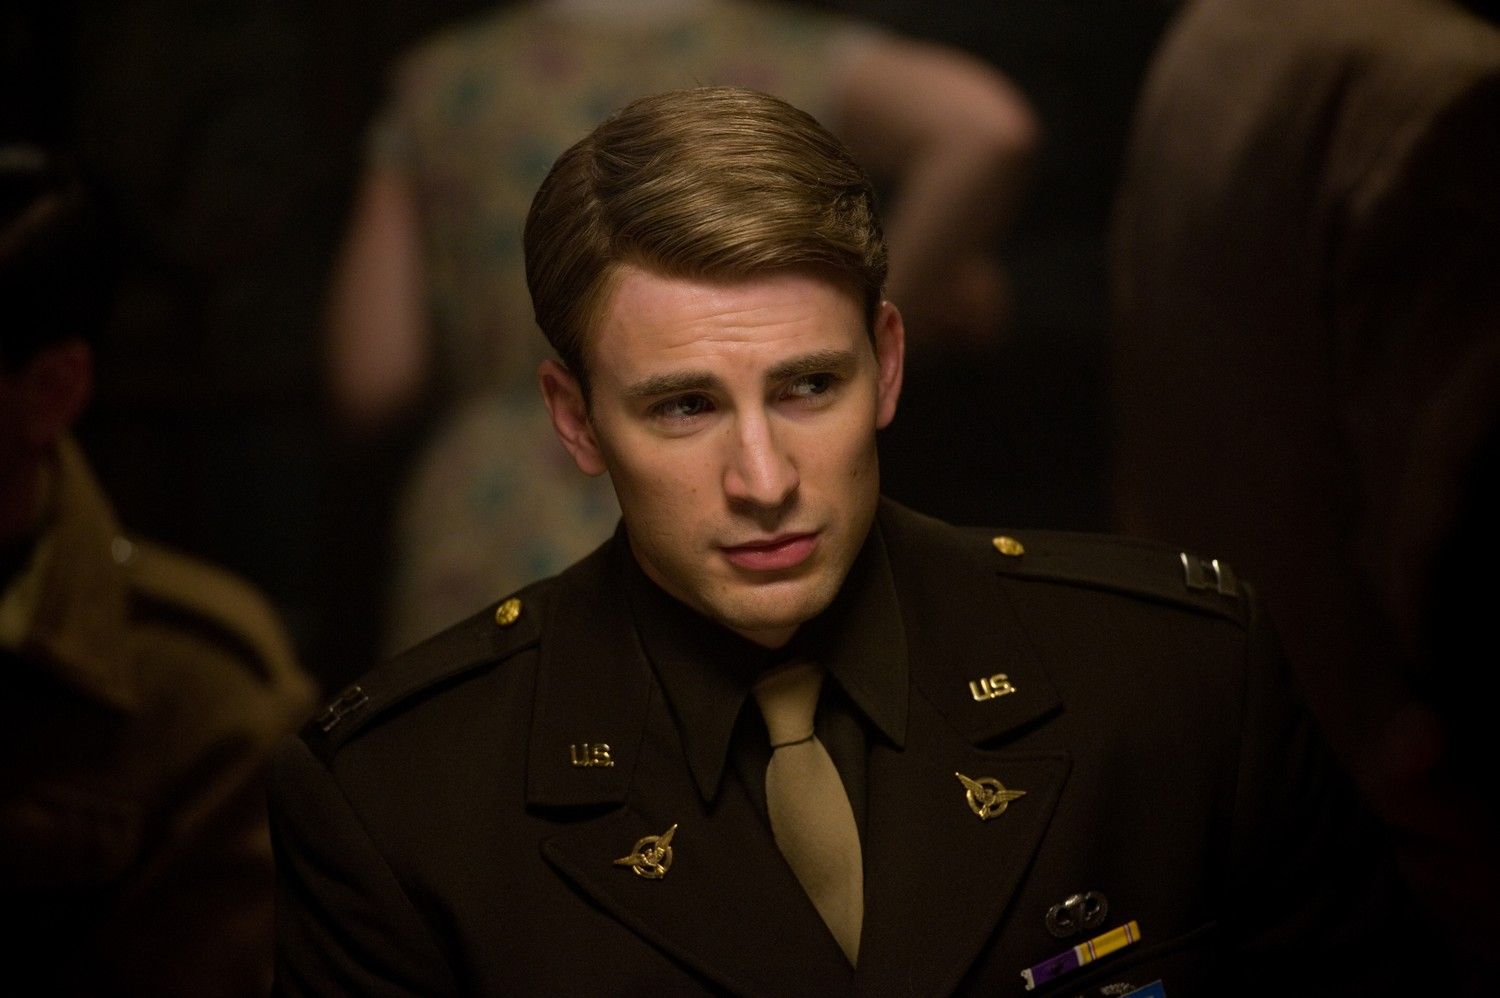 captain america images hd